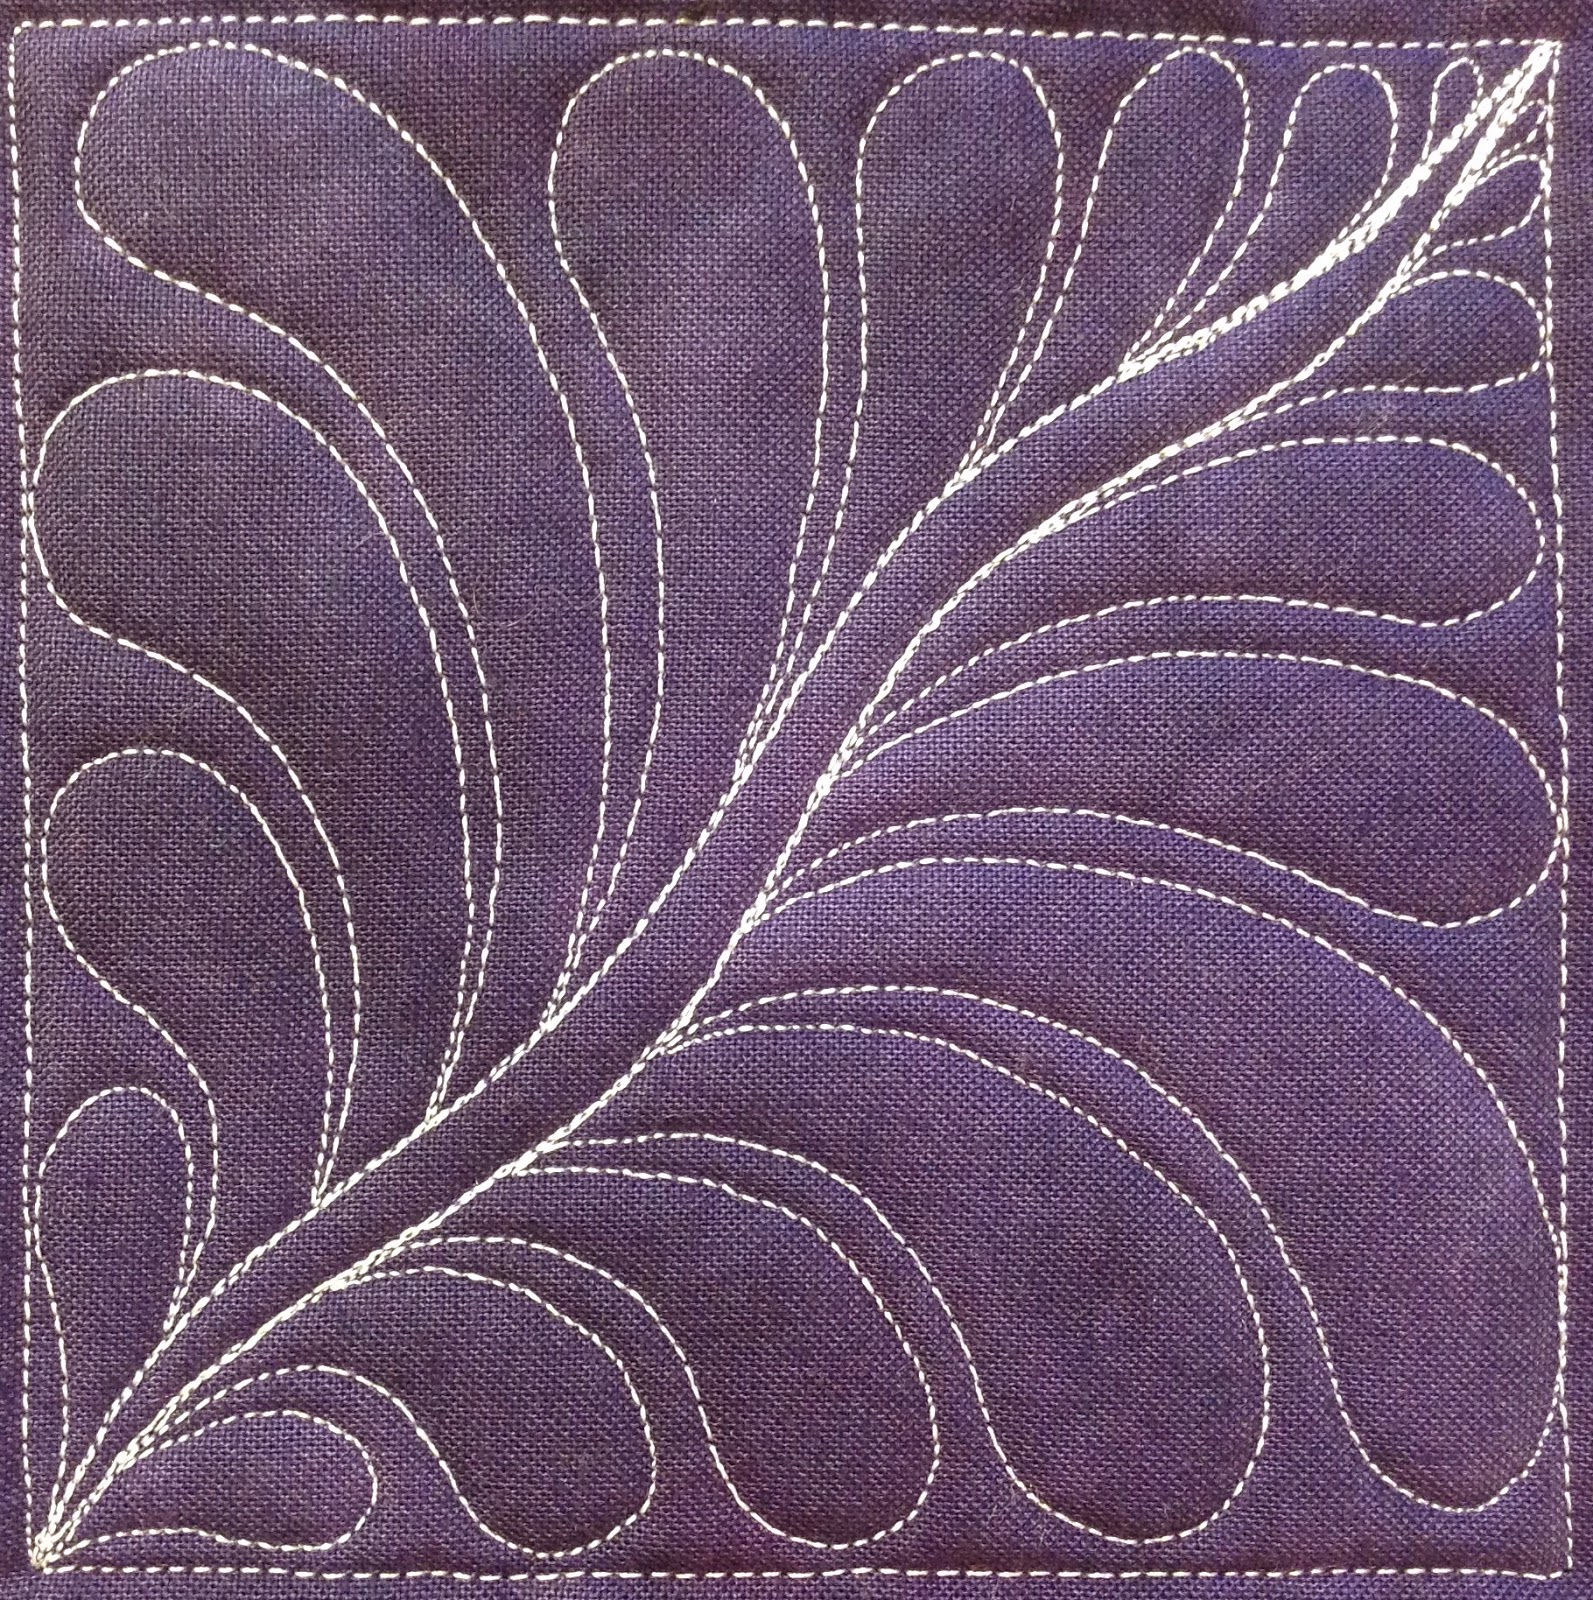 The Free Motion Quilting Project: 79. Free Motion Quilt Space Feather, #420